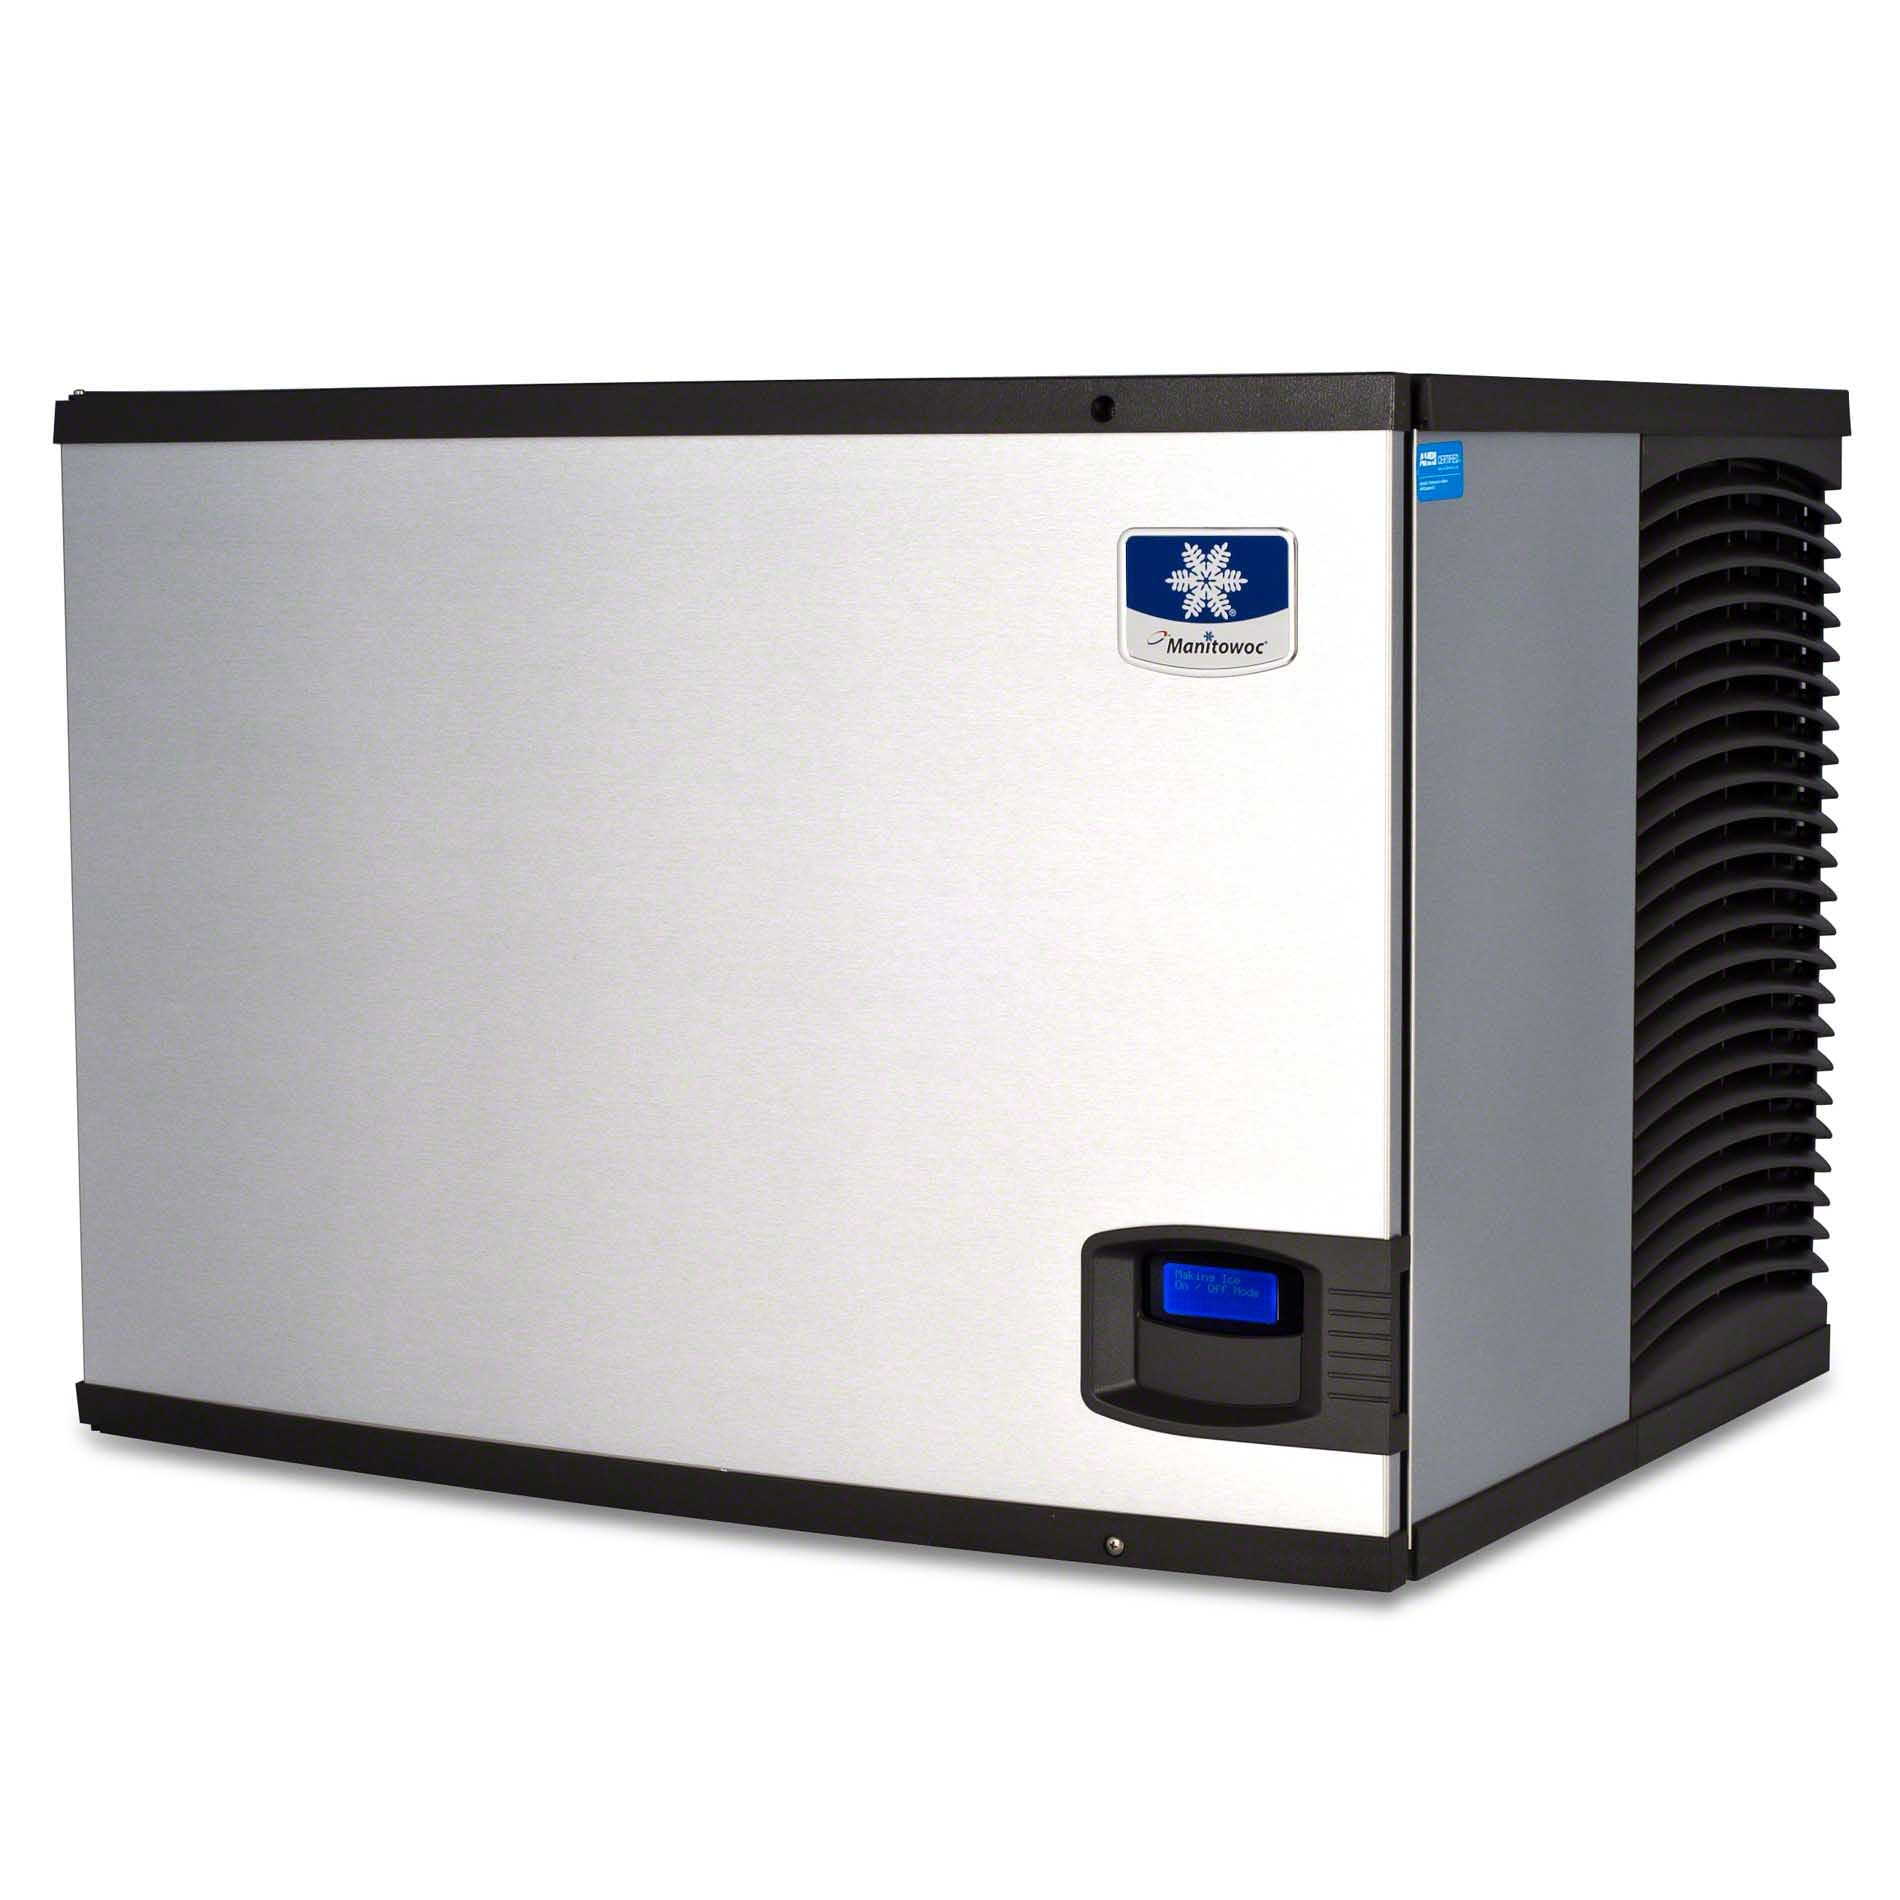 Manitowoc - IY-0594N 510 lb Half Size Cube Ice Machine - Indigo Series Ice machine sold by Food Service Warehouse